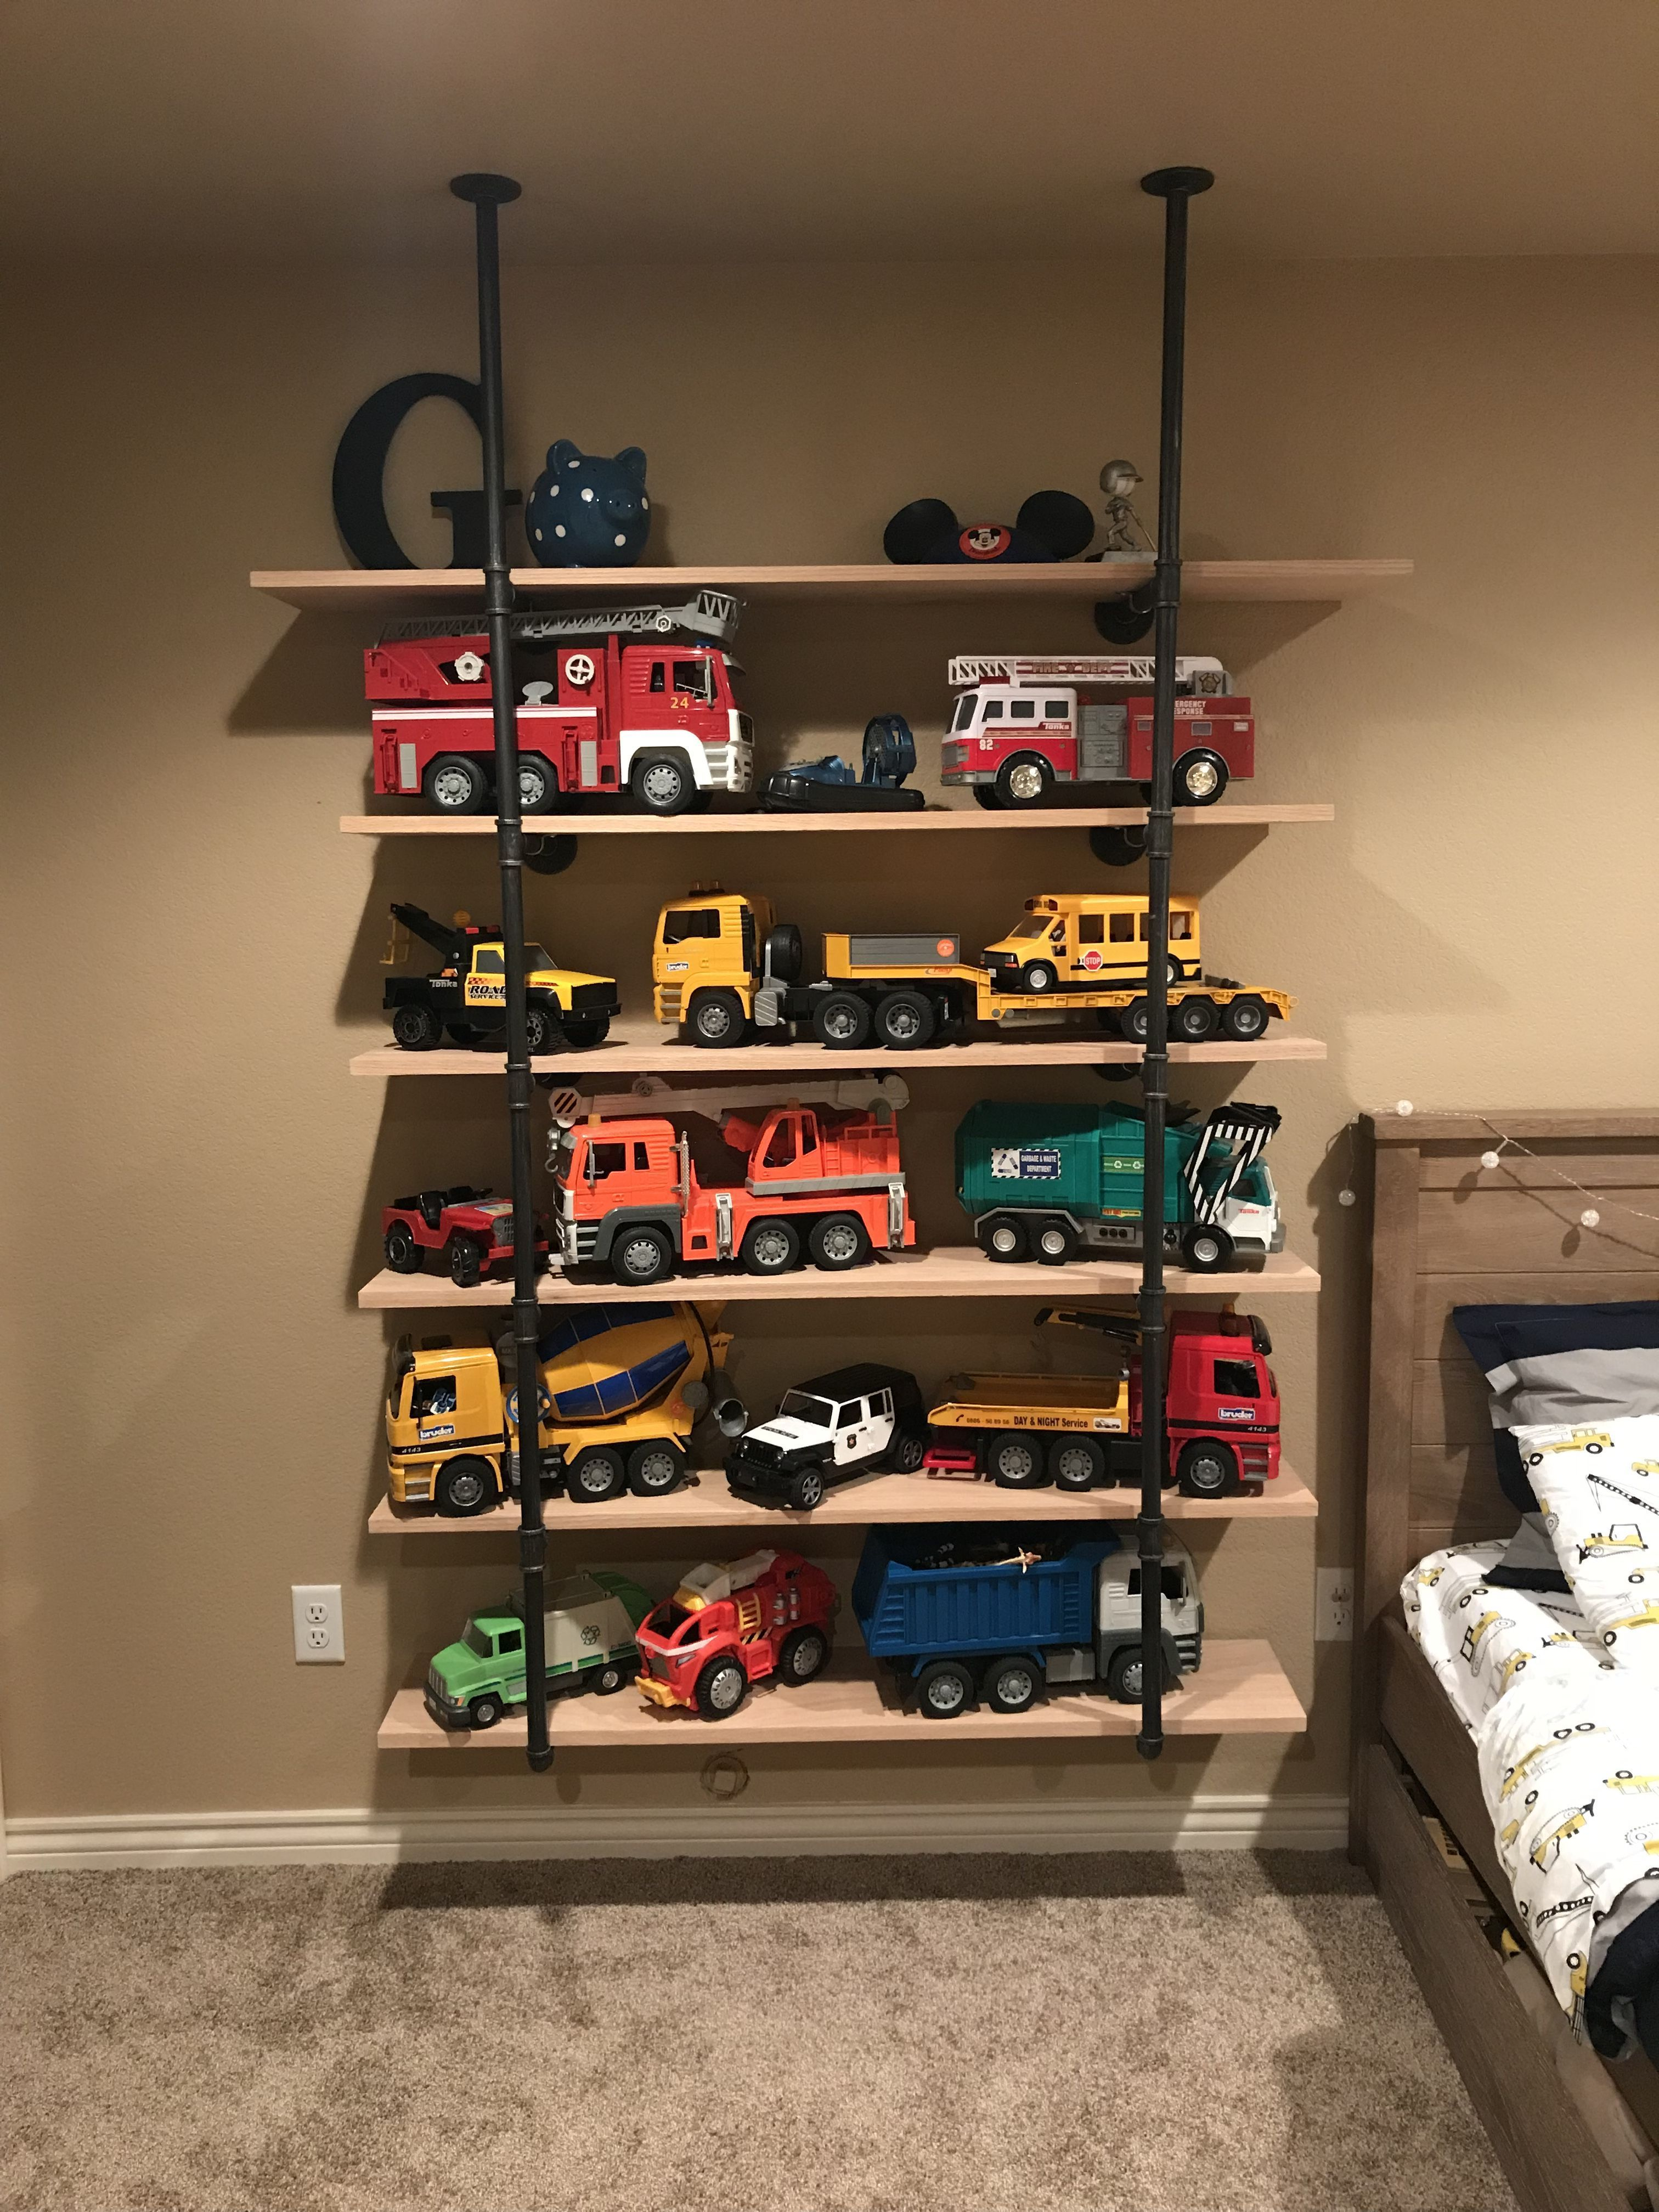 Diy Toy Organizer Diy Toy Storage Ideas Perfect For Small Spaces And Kids Diy Inspiration Toyorganizer Toystorage Big Boy Room Boy Room Toddler Rooms